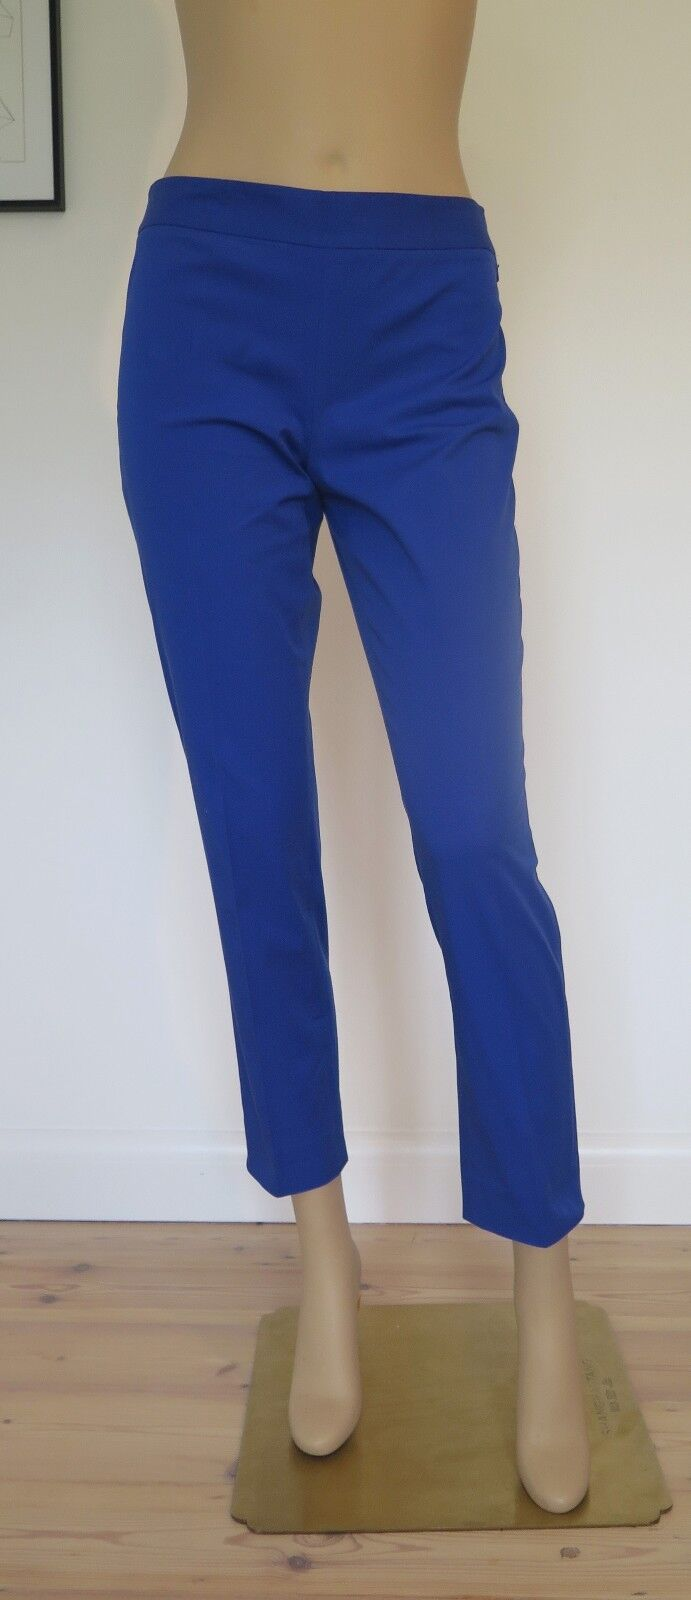 DKNY COBALT blueE CROPPED TROUSERS - SIZE SMALL - SUMMER - COTTON